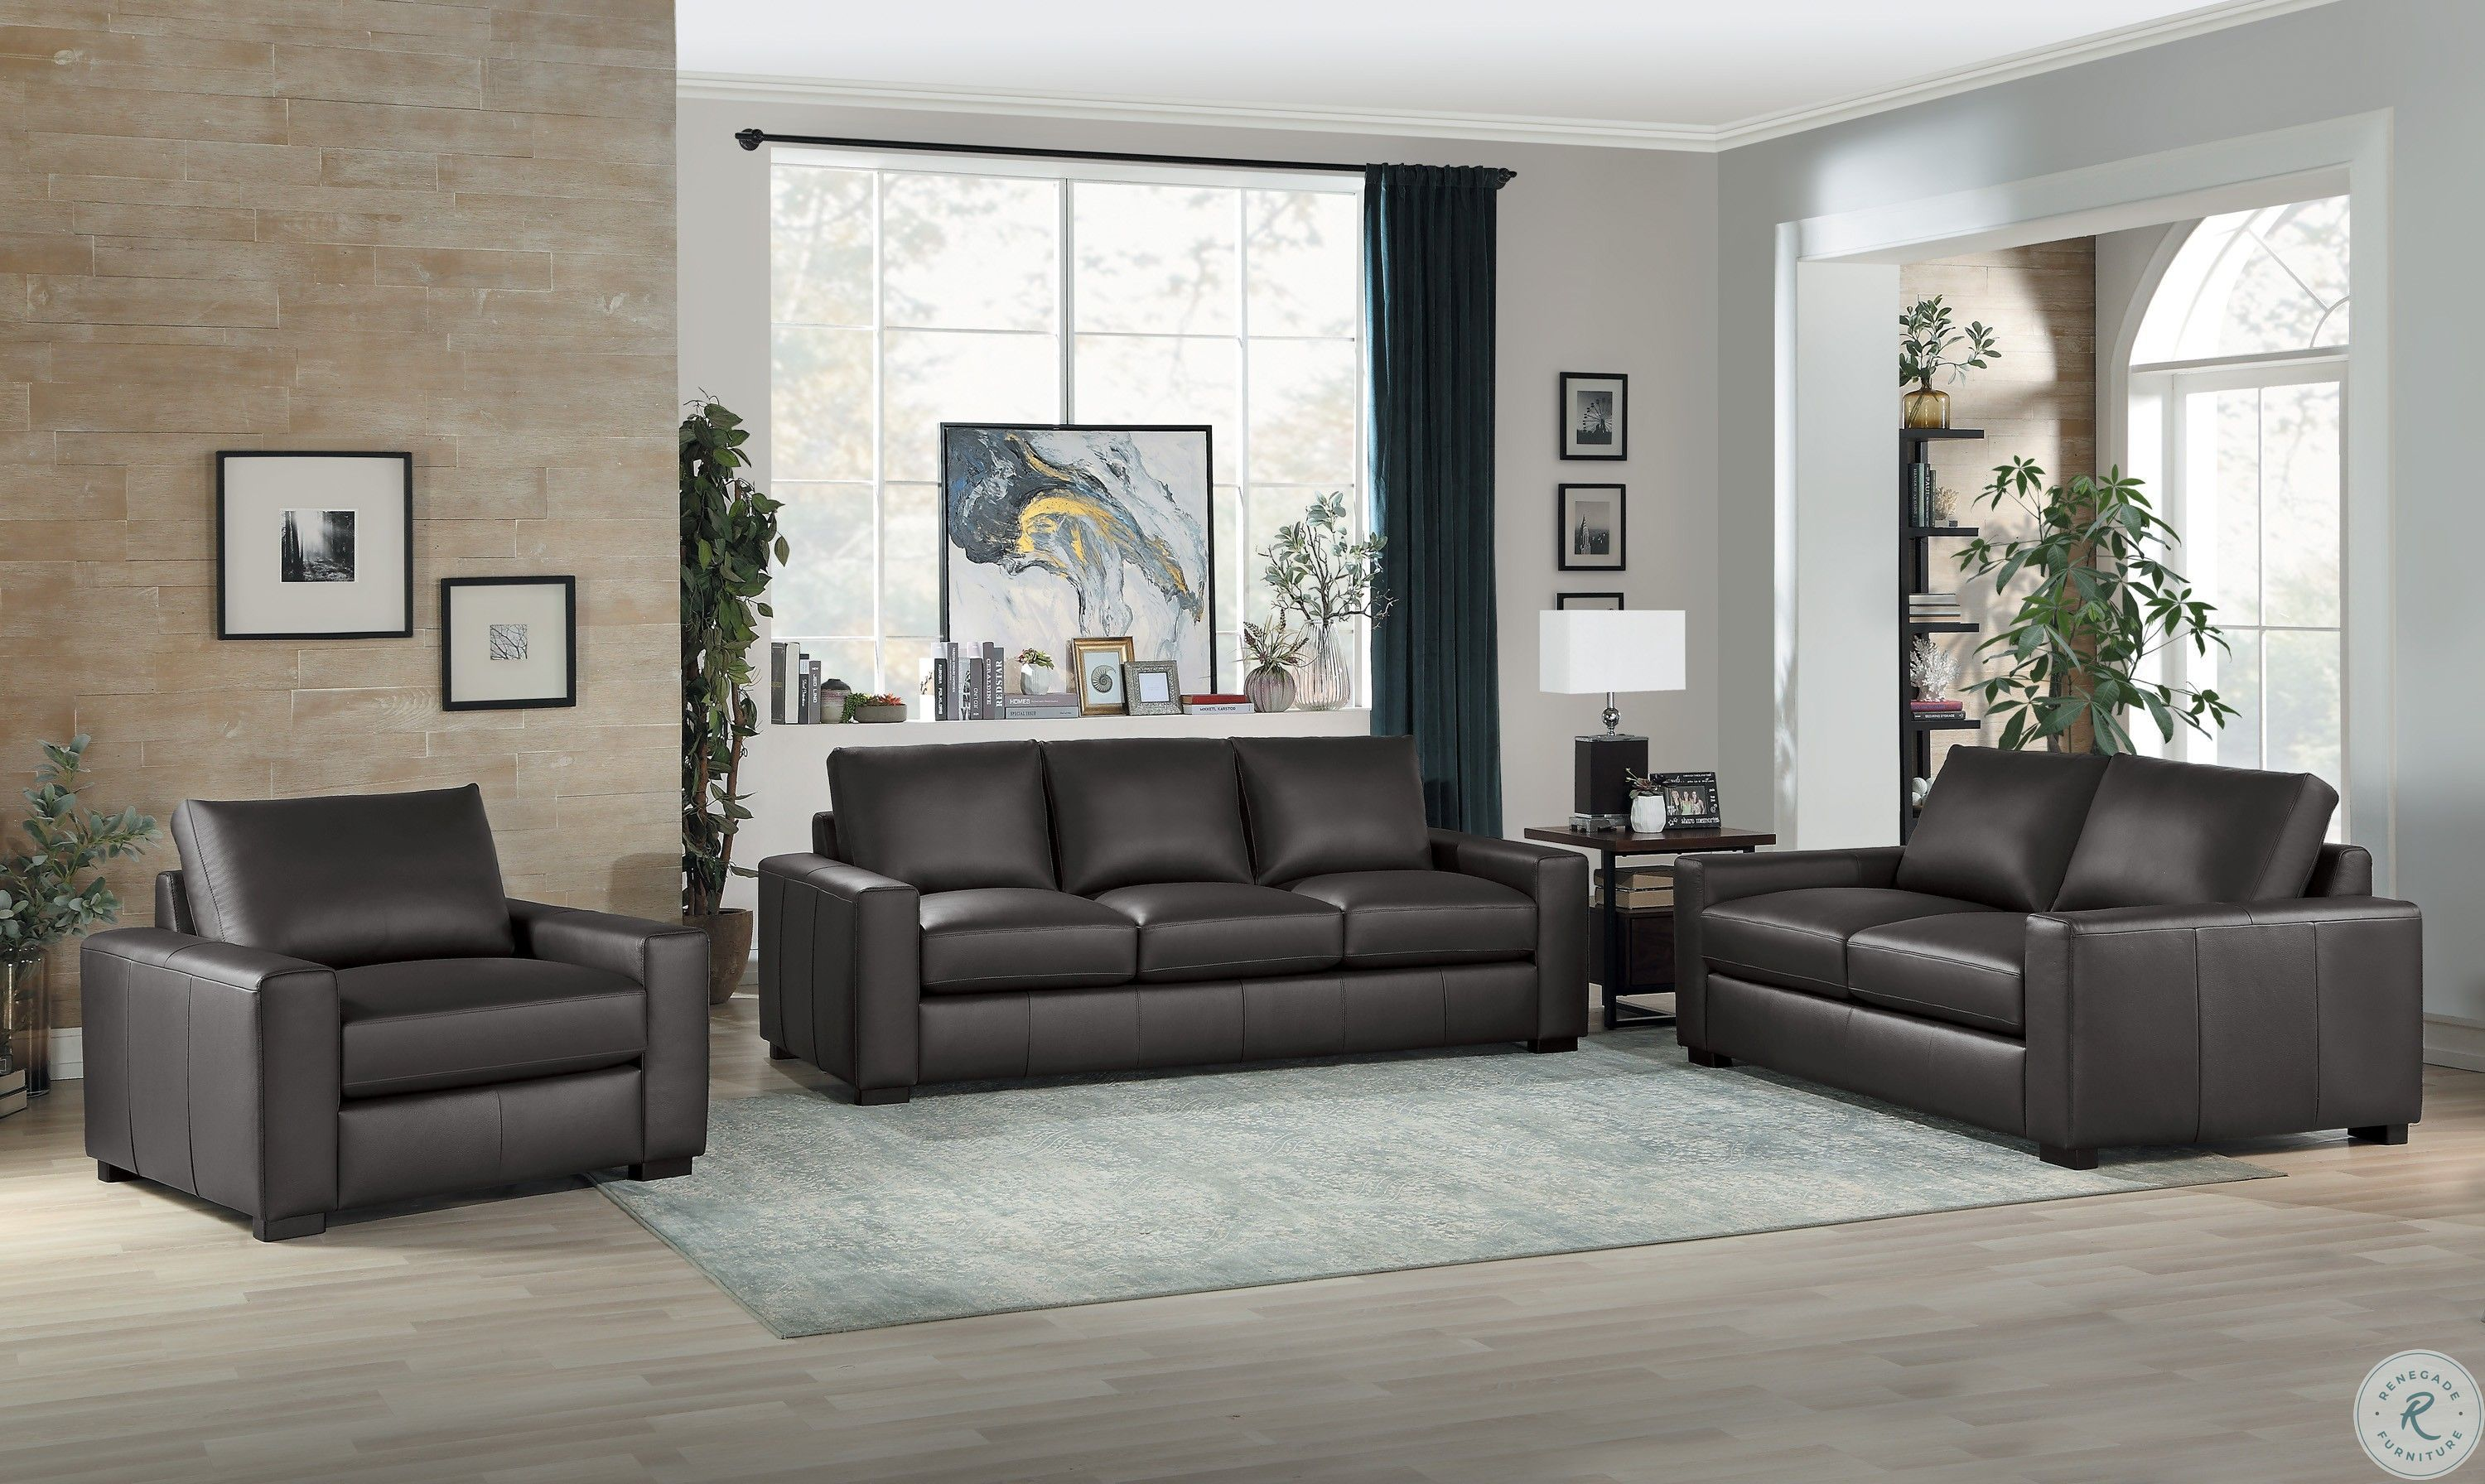 Escolar Dark Brown Leather Loveseat From Homelegance Coleman Furniture